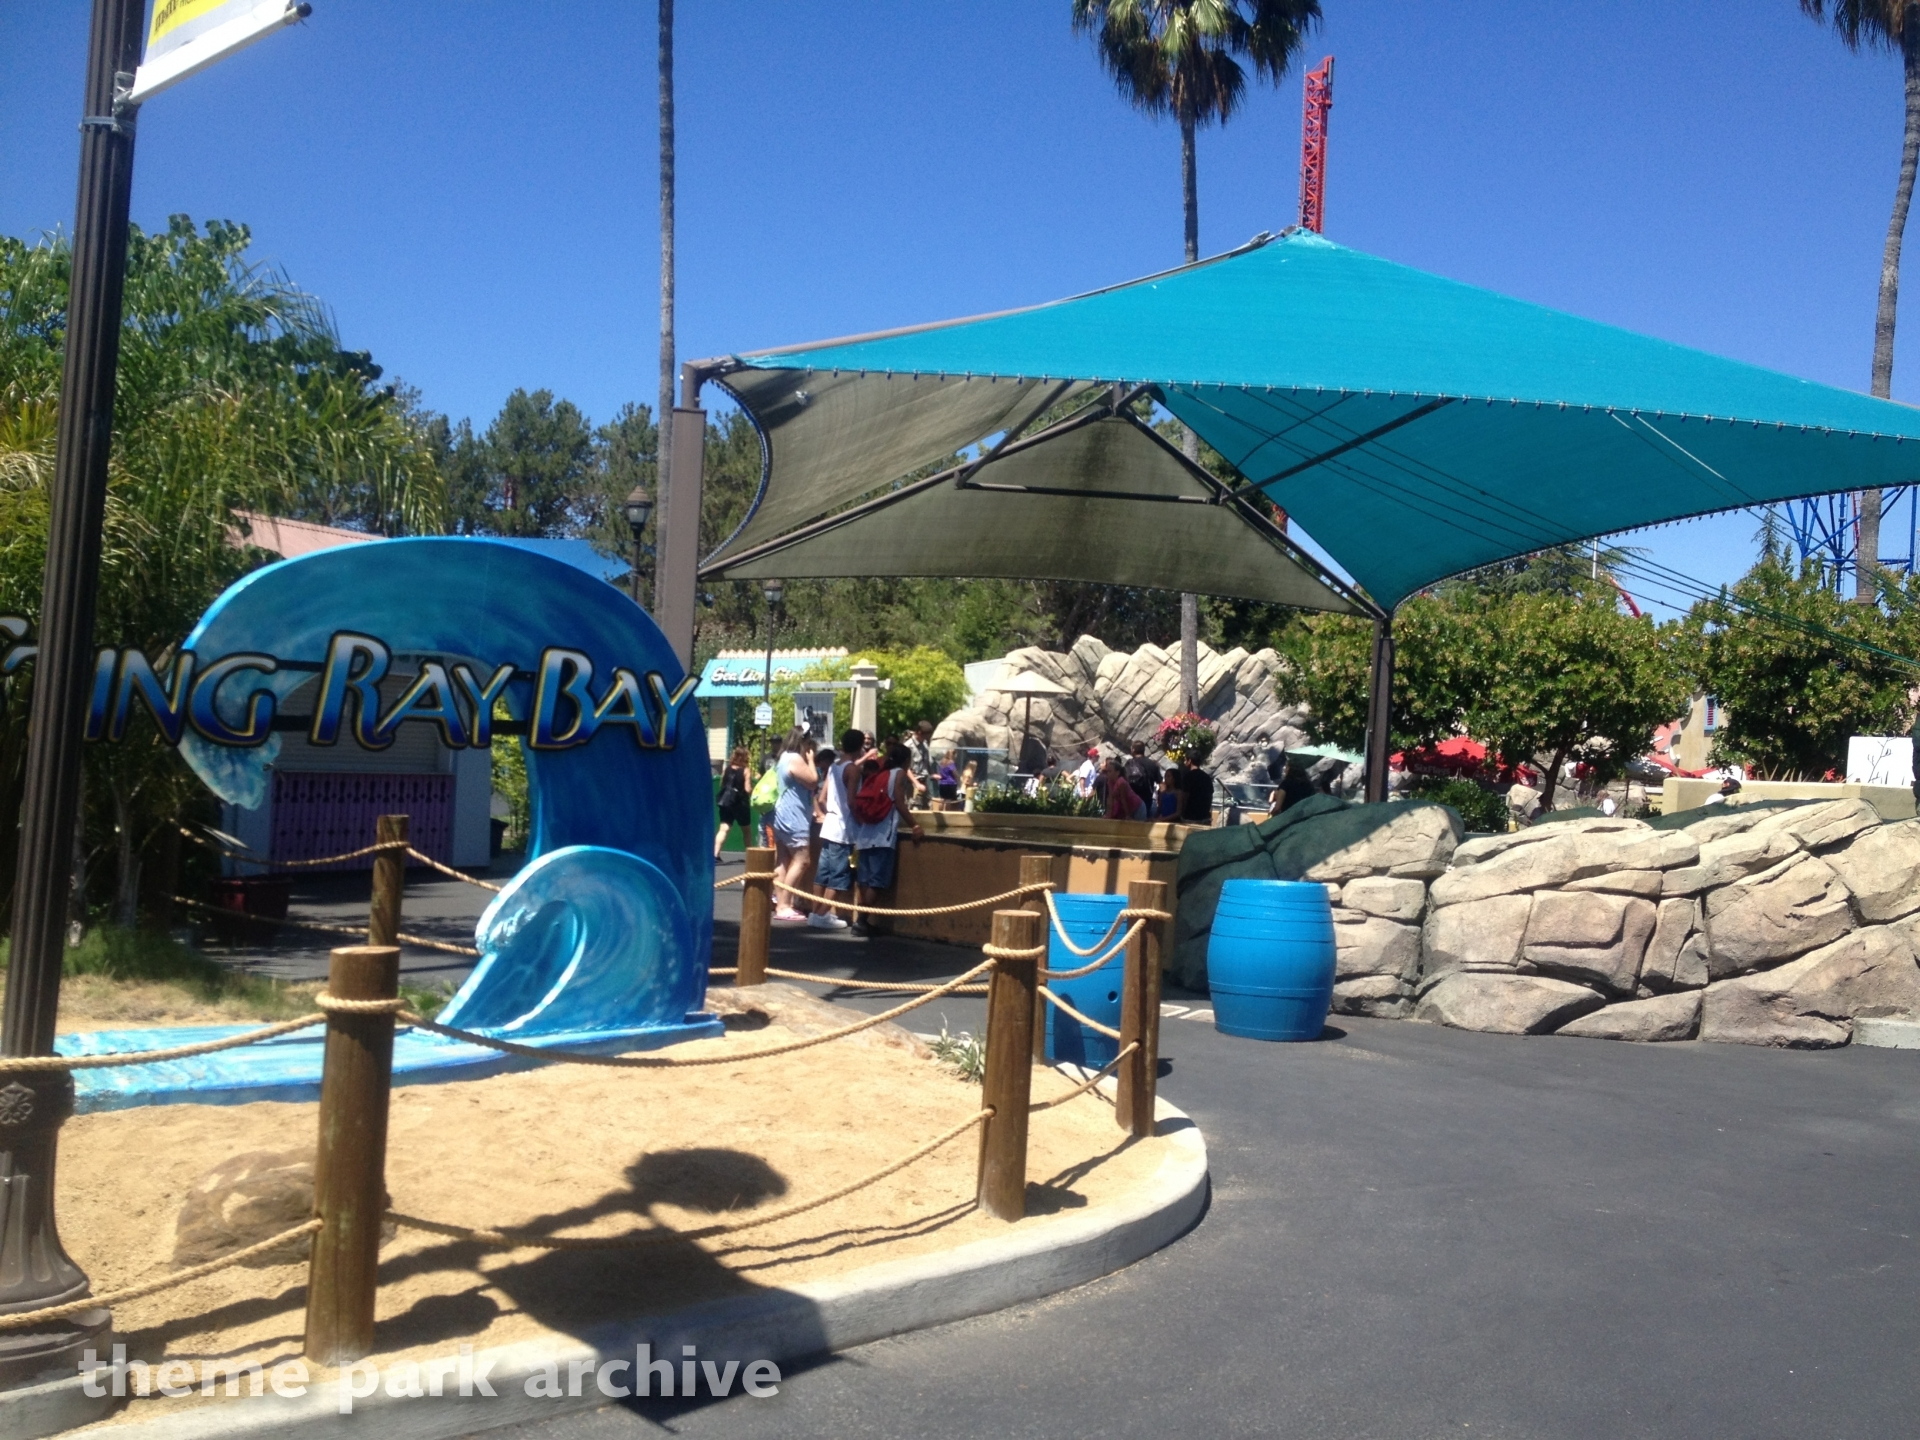 Sting Ray Bay at Six Flags Discovery Kingdom